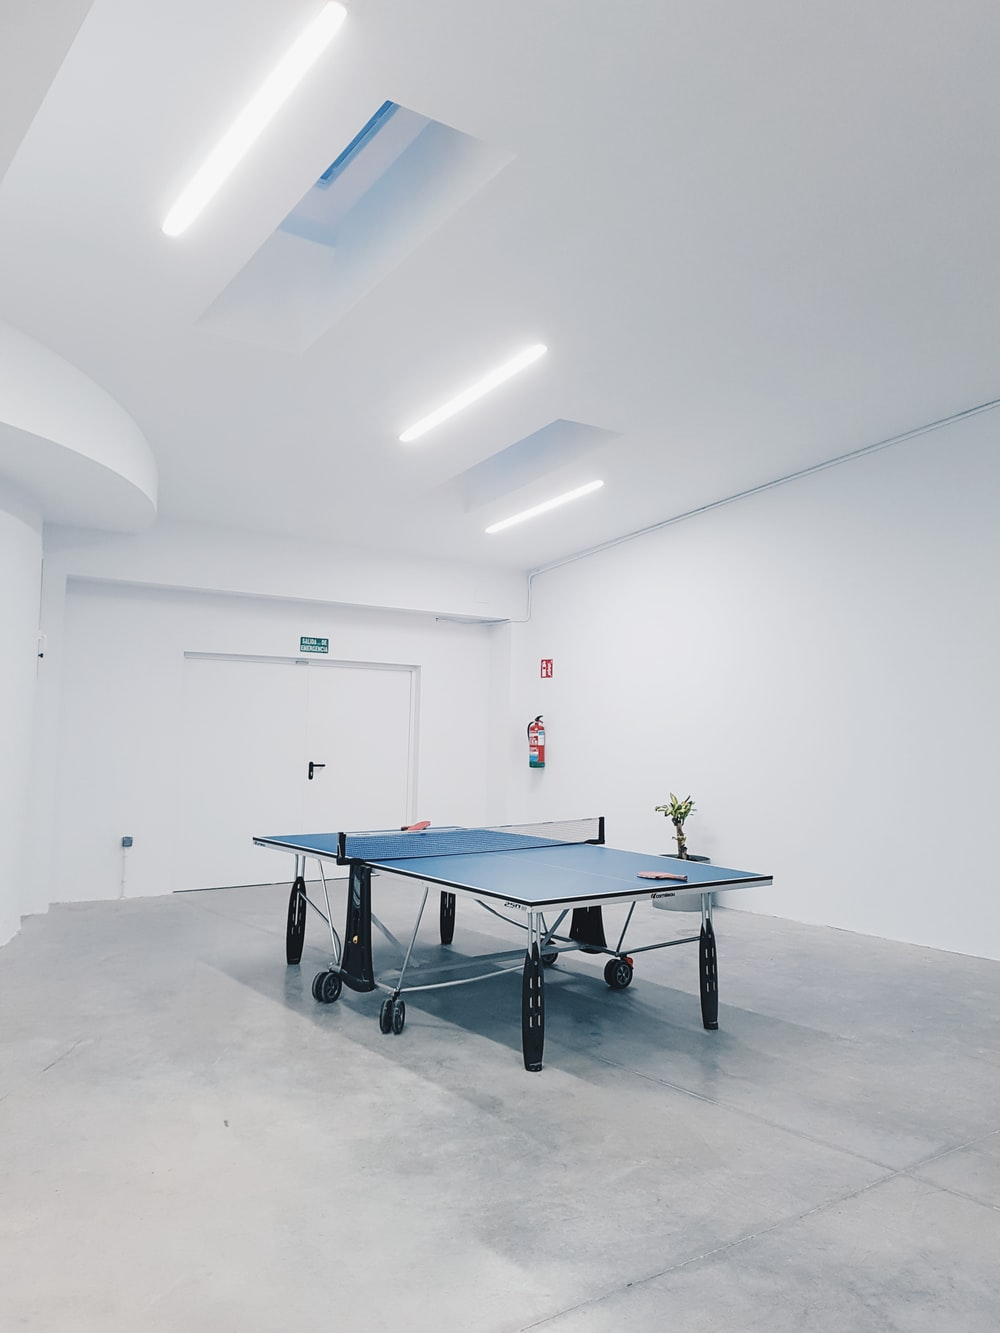 photography of blue table tennis inside a room